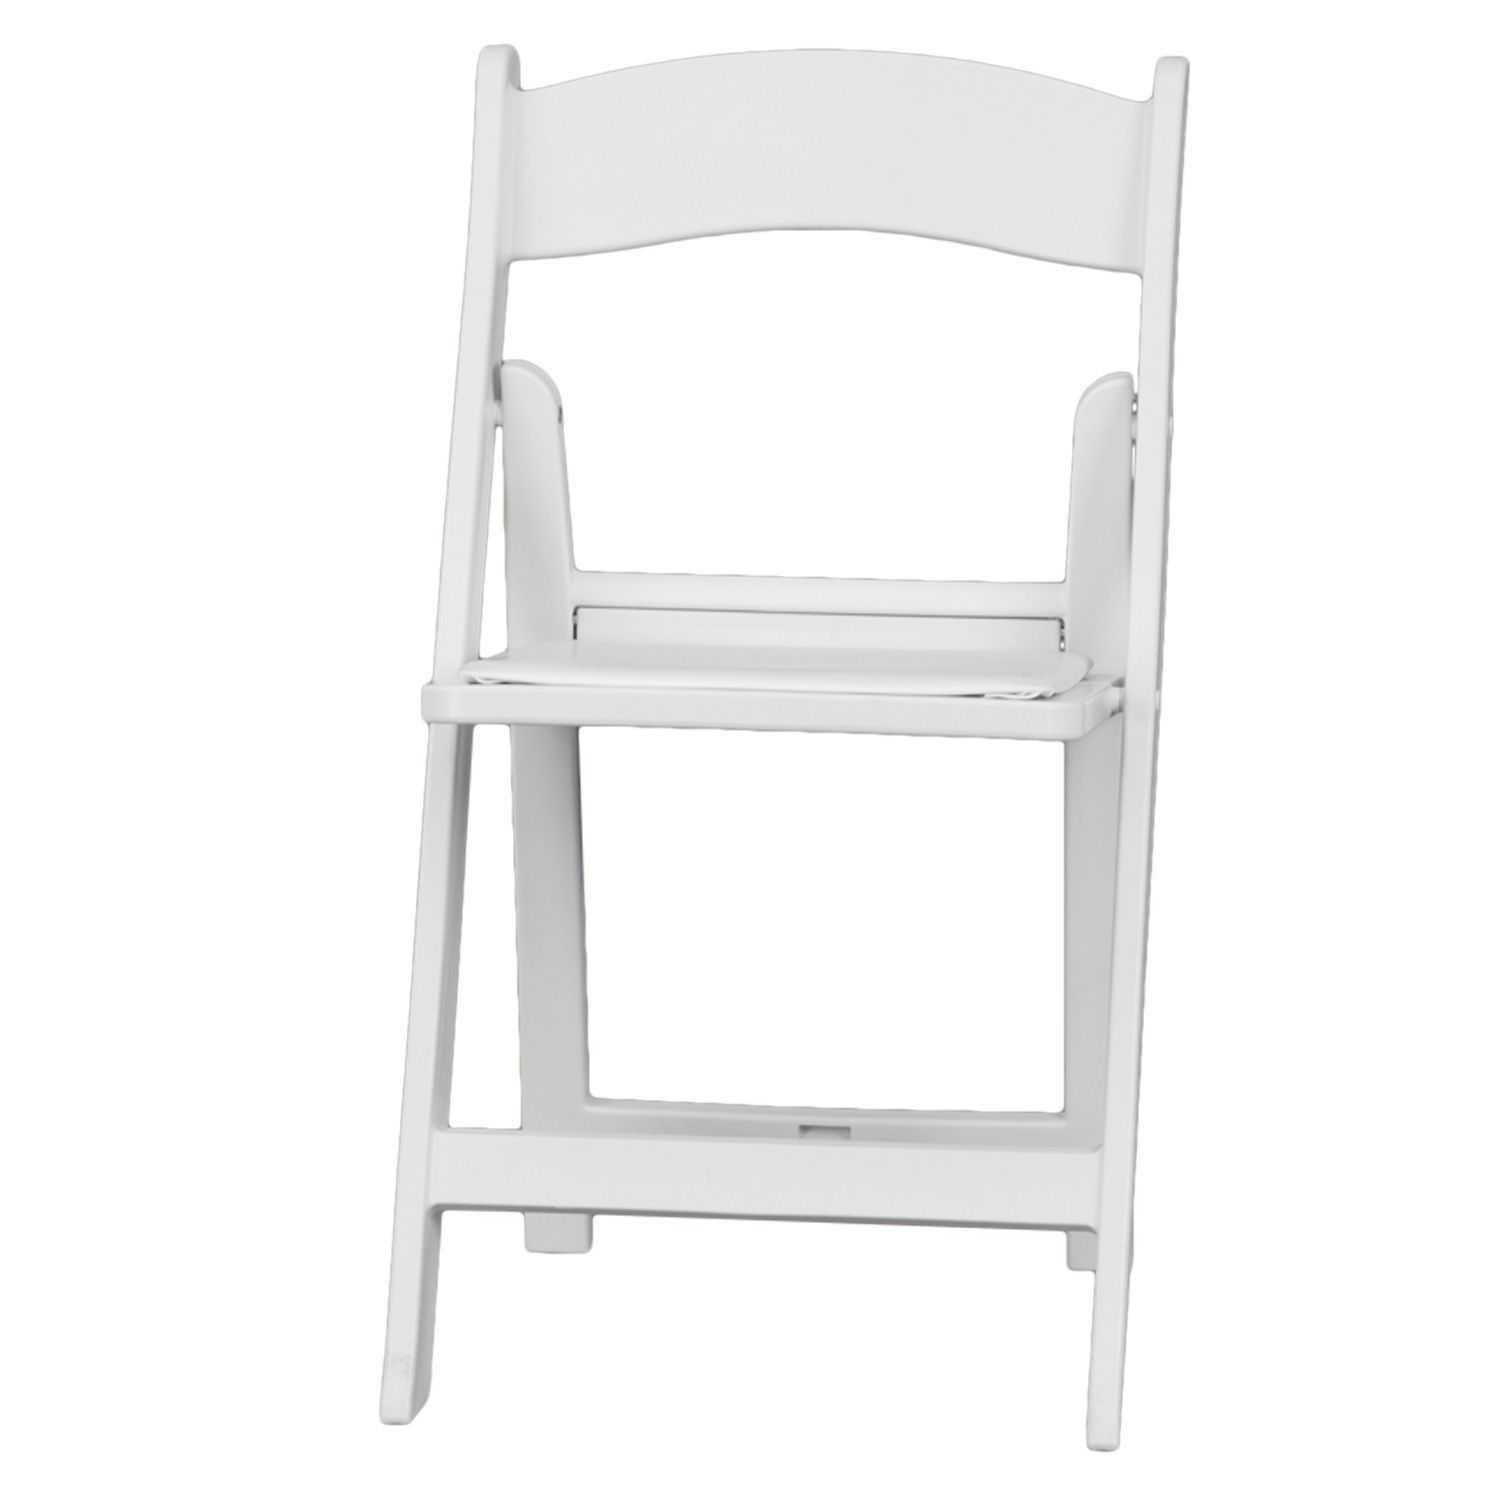 28 Folding Nylon Chairs 5 Commercial White Plastic